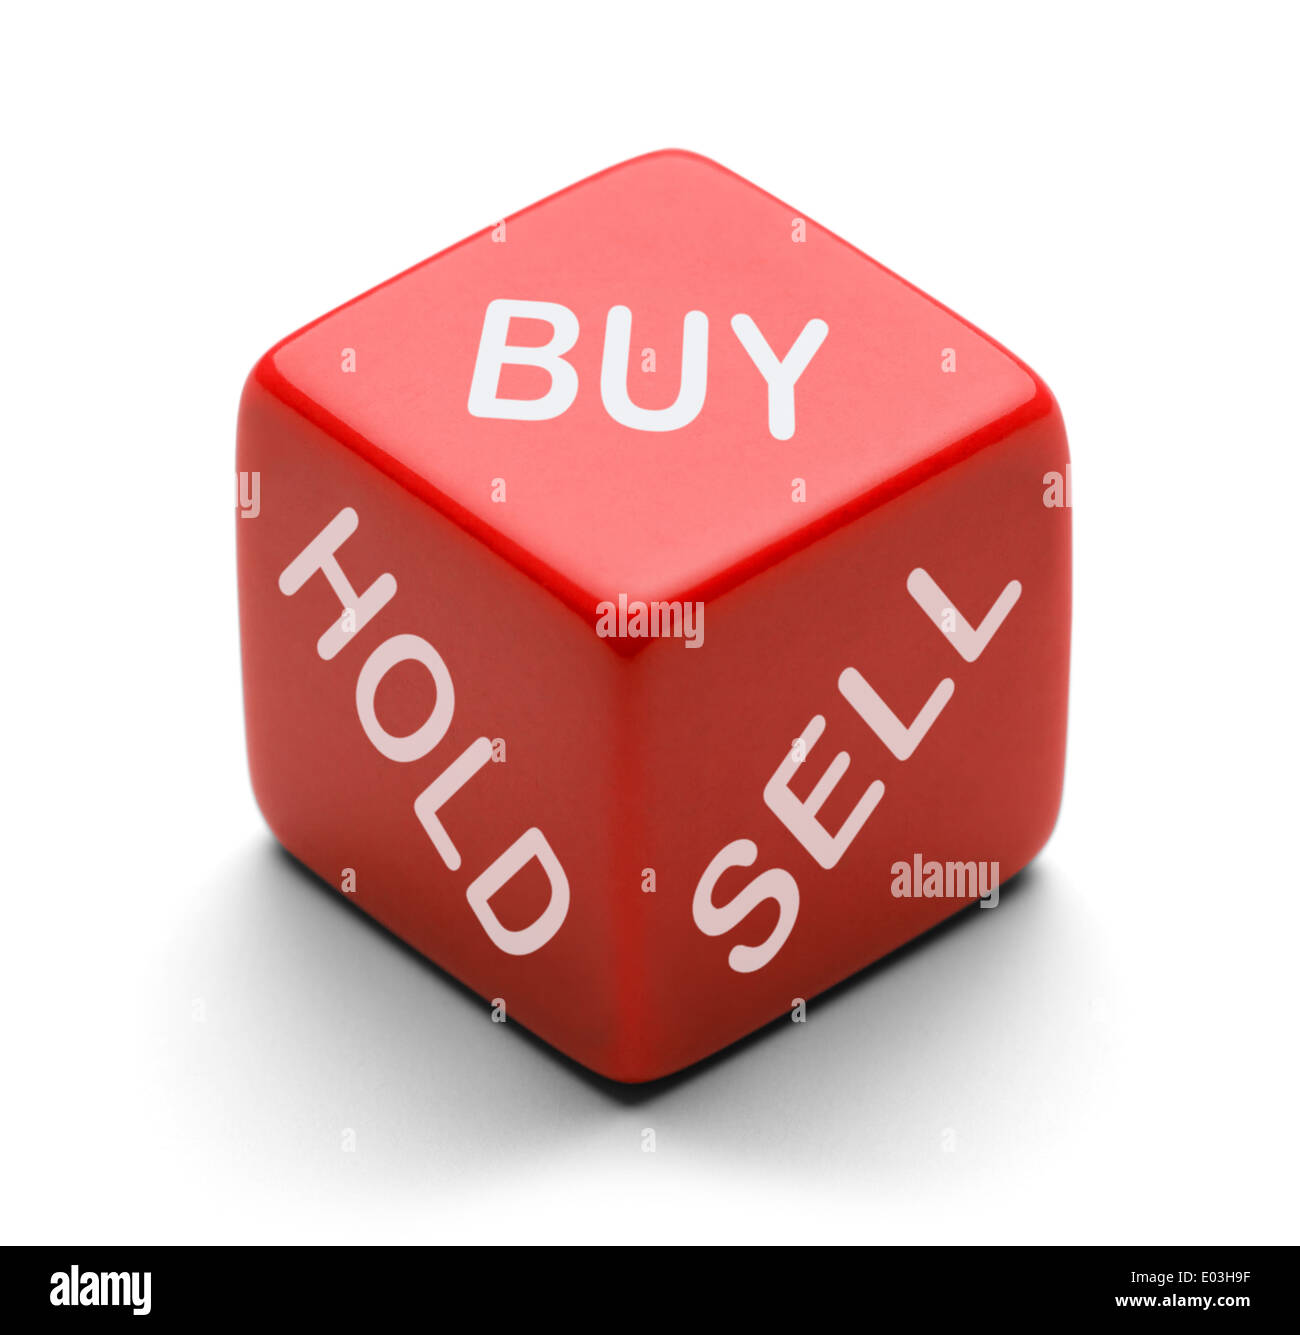 Red Dice with Buy Hold and Sell on it Isolated on White Background. For Stock Broker Decision Making. - Stock Image